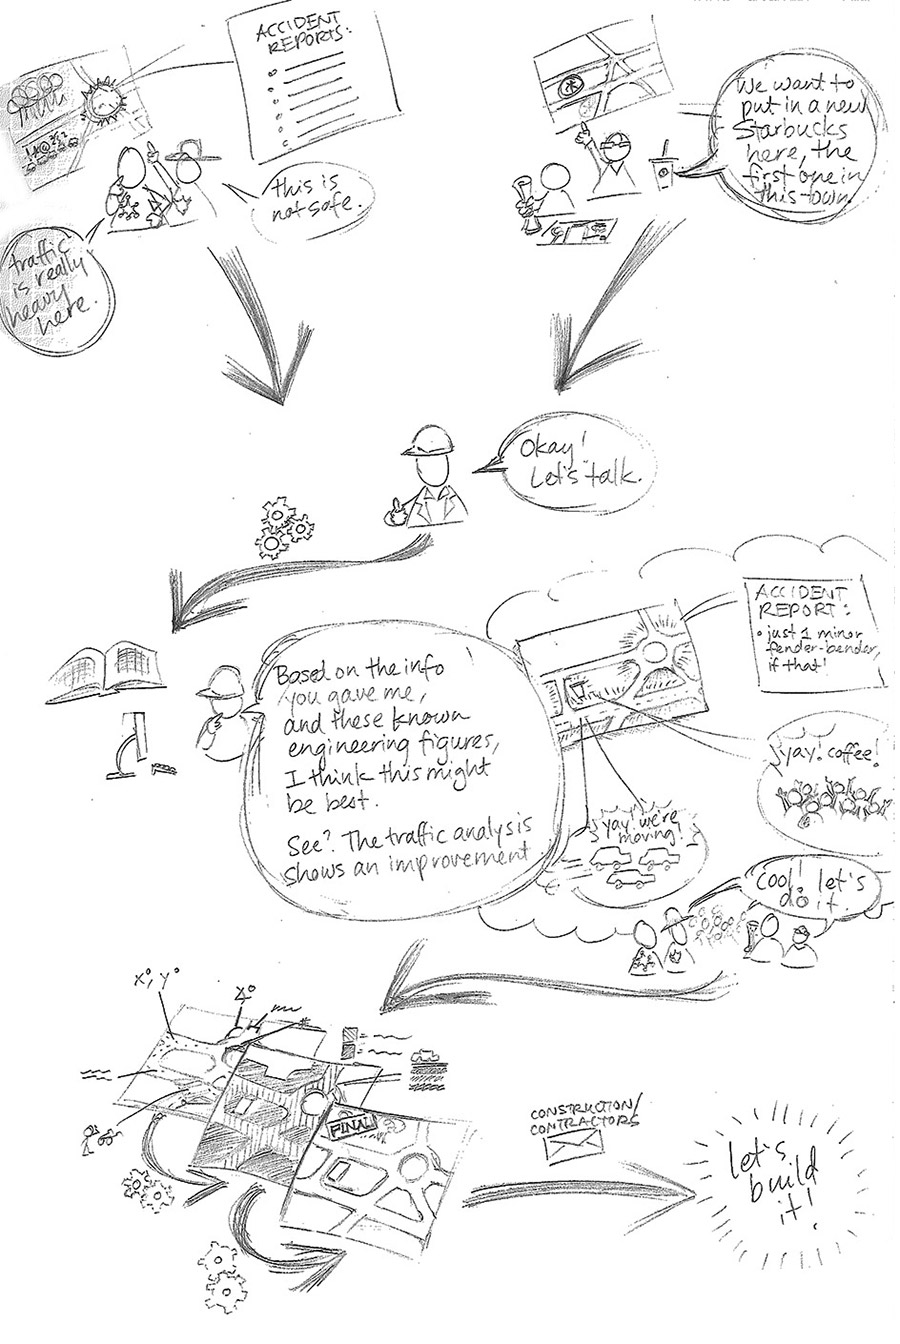 A pencil-sketch comic that summarizes the conceptual design process in civil engineering. In essence, police are concerned about the high level of accidents and traffic at an intersection. Developers want to put in a Starbucks at that same intersection. They talk to an urban planner, who comes up with a new layout for the whole area that will mitigate traffic.